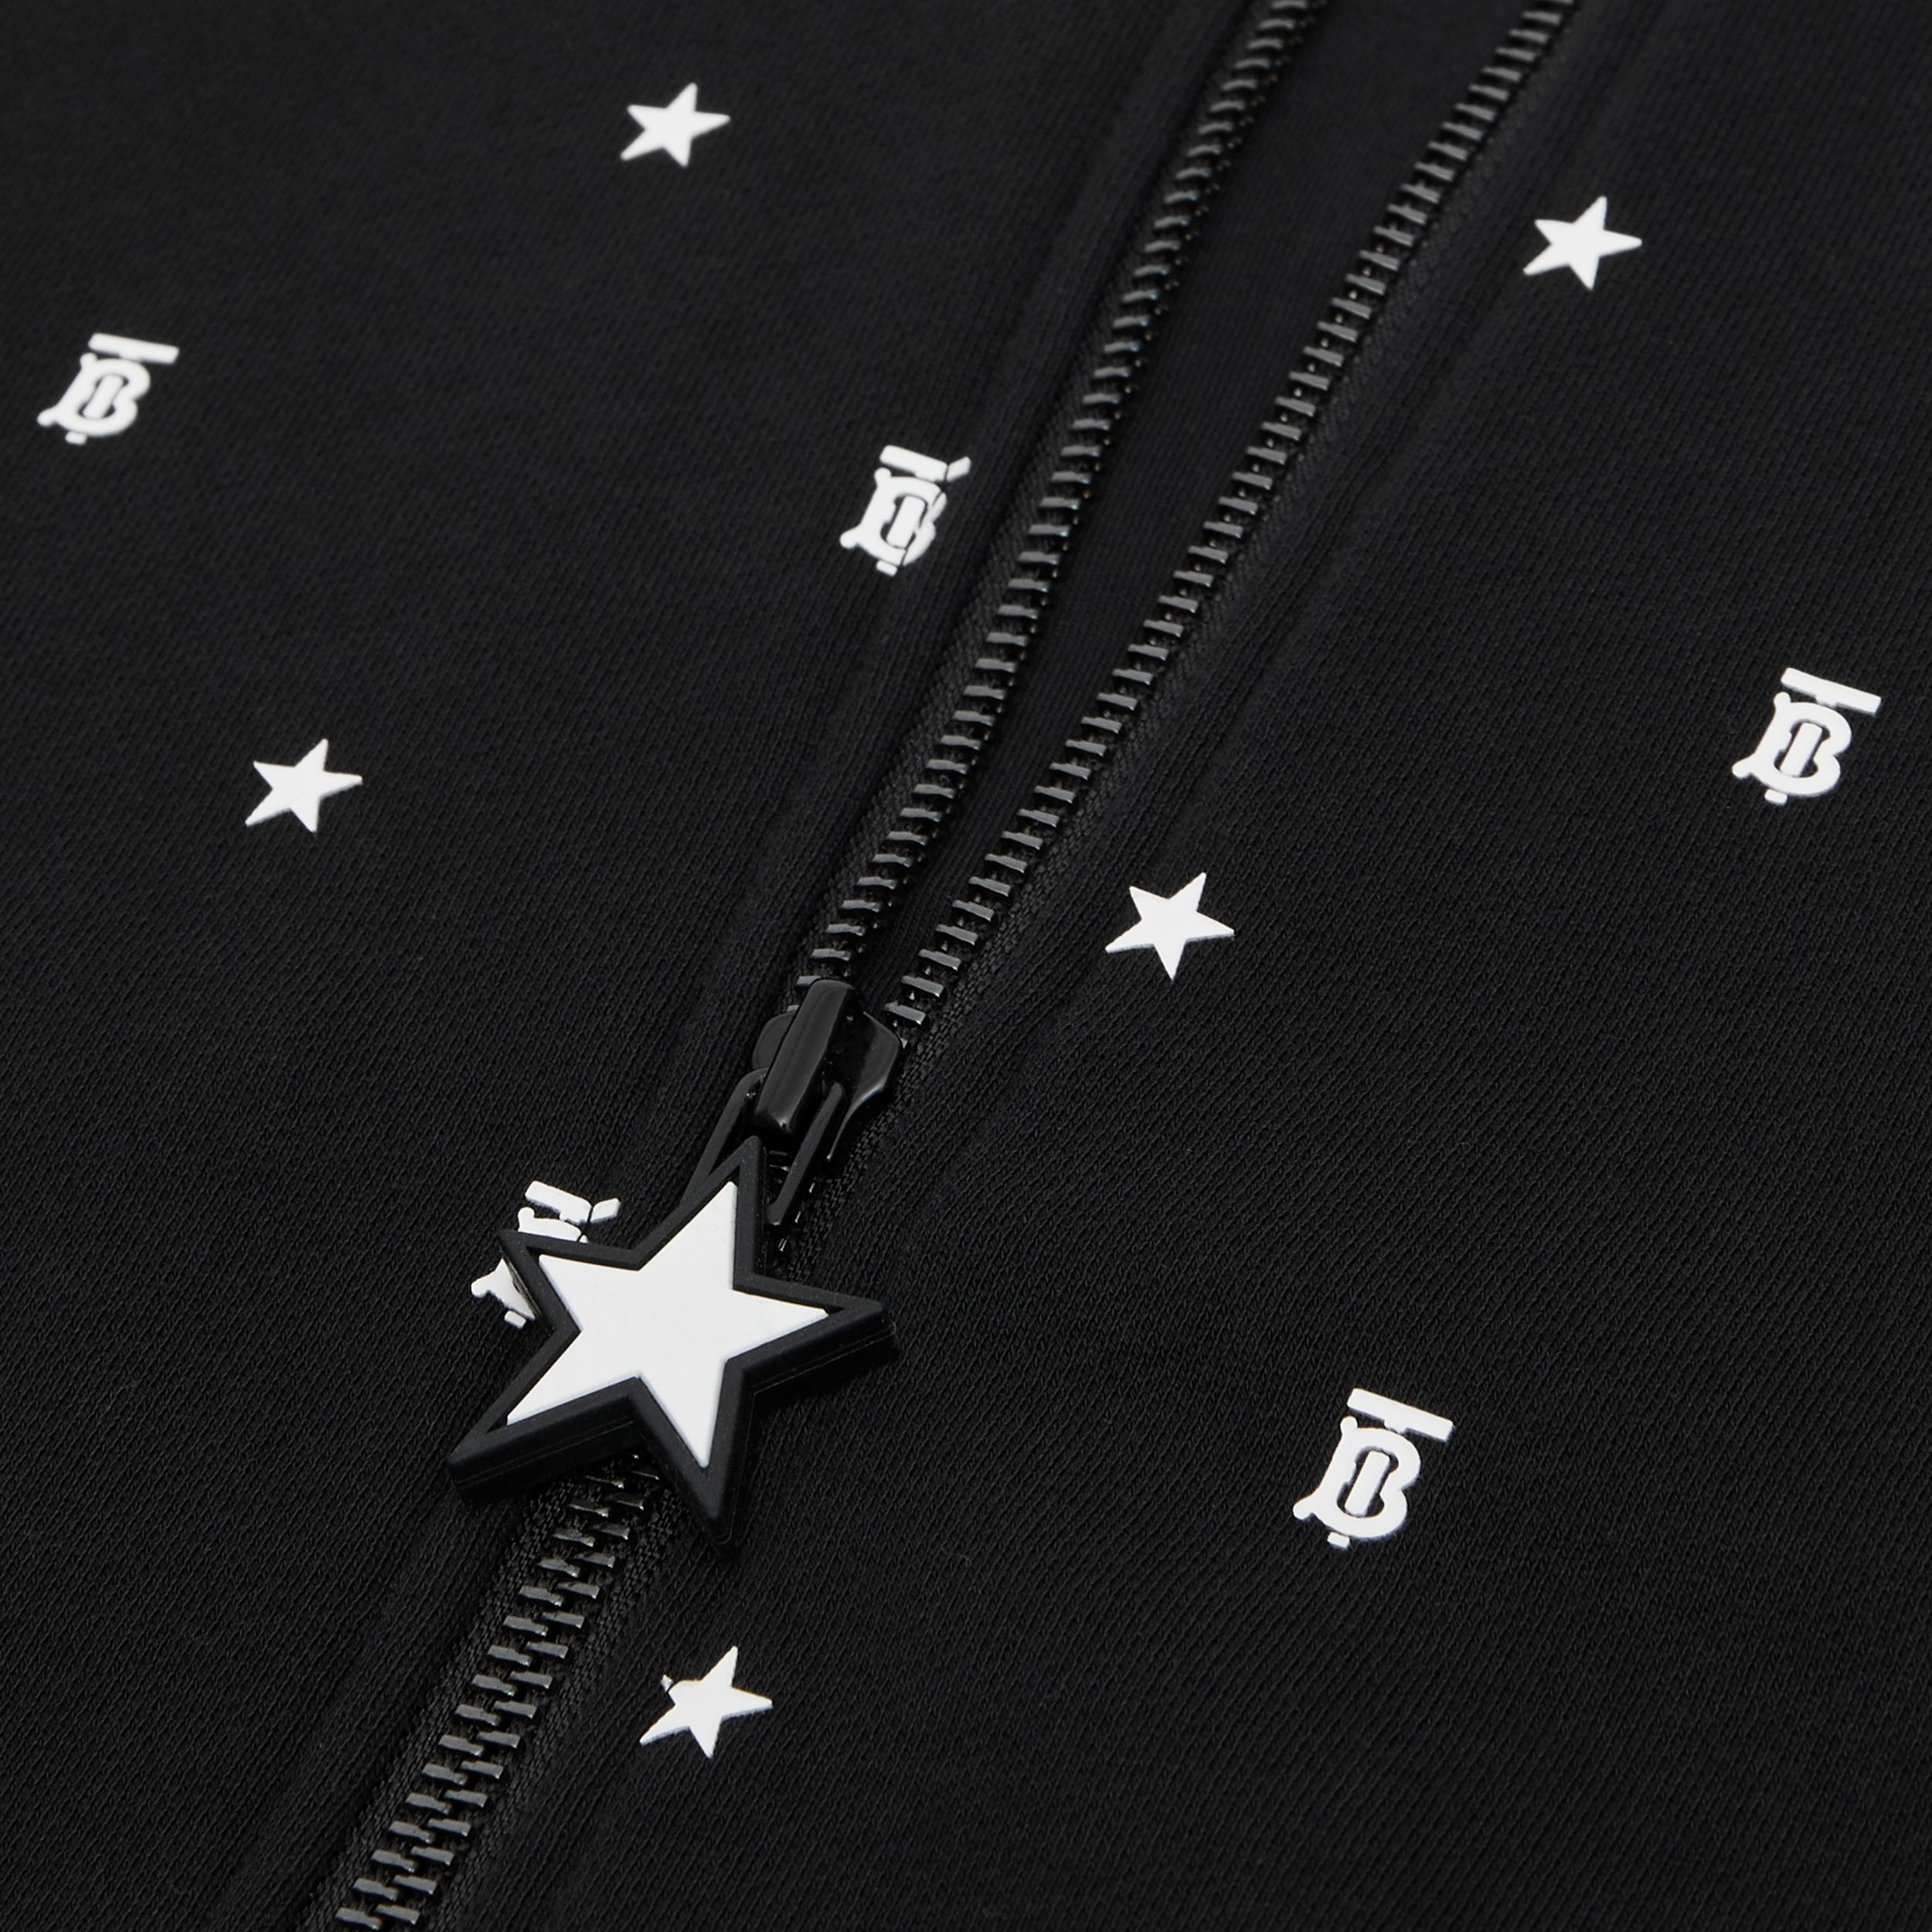 Star and Monogram Motif Cotton Hooded Top in Black | Burberry Hong Kong S.A.R. - 2